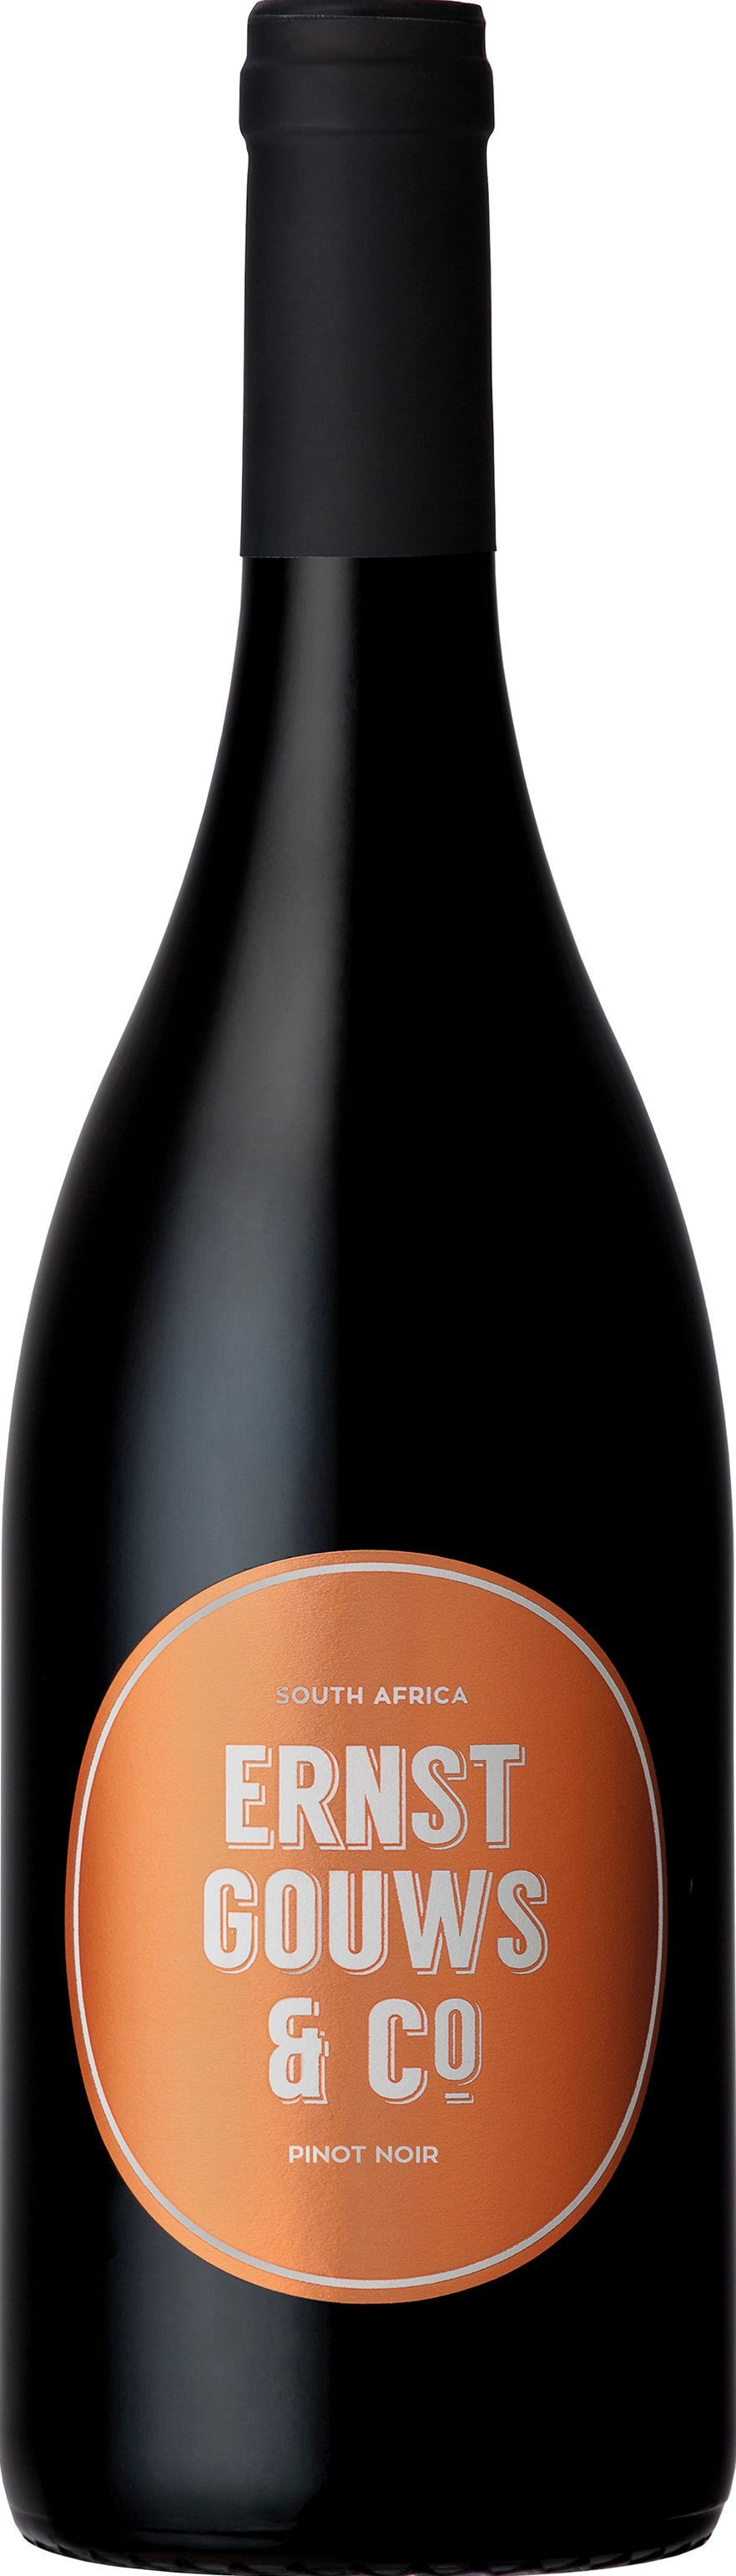 Pinot Noir 2017, Ernst Gouws & Co, Western Cape, South Africa